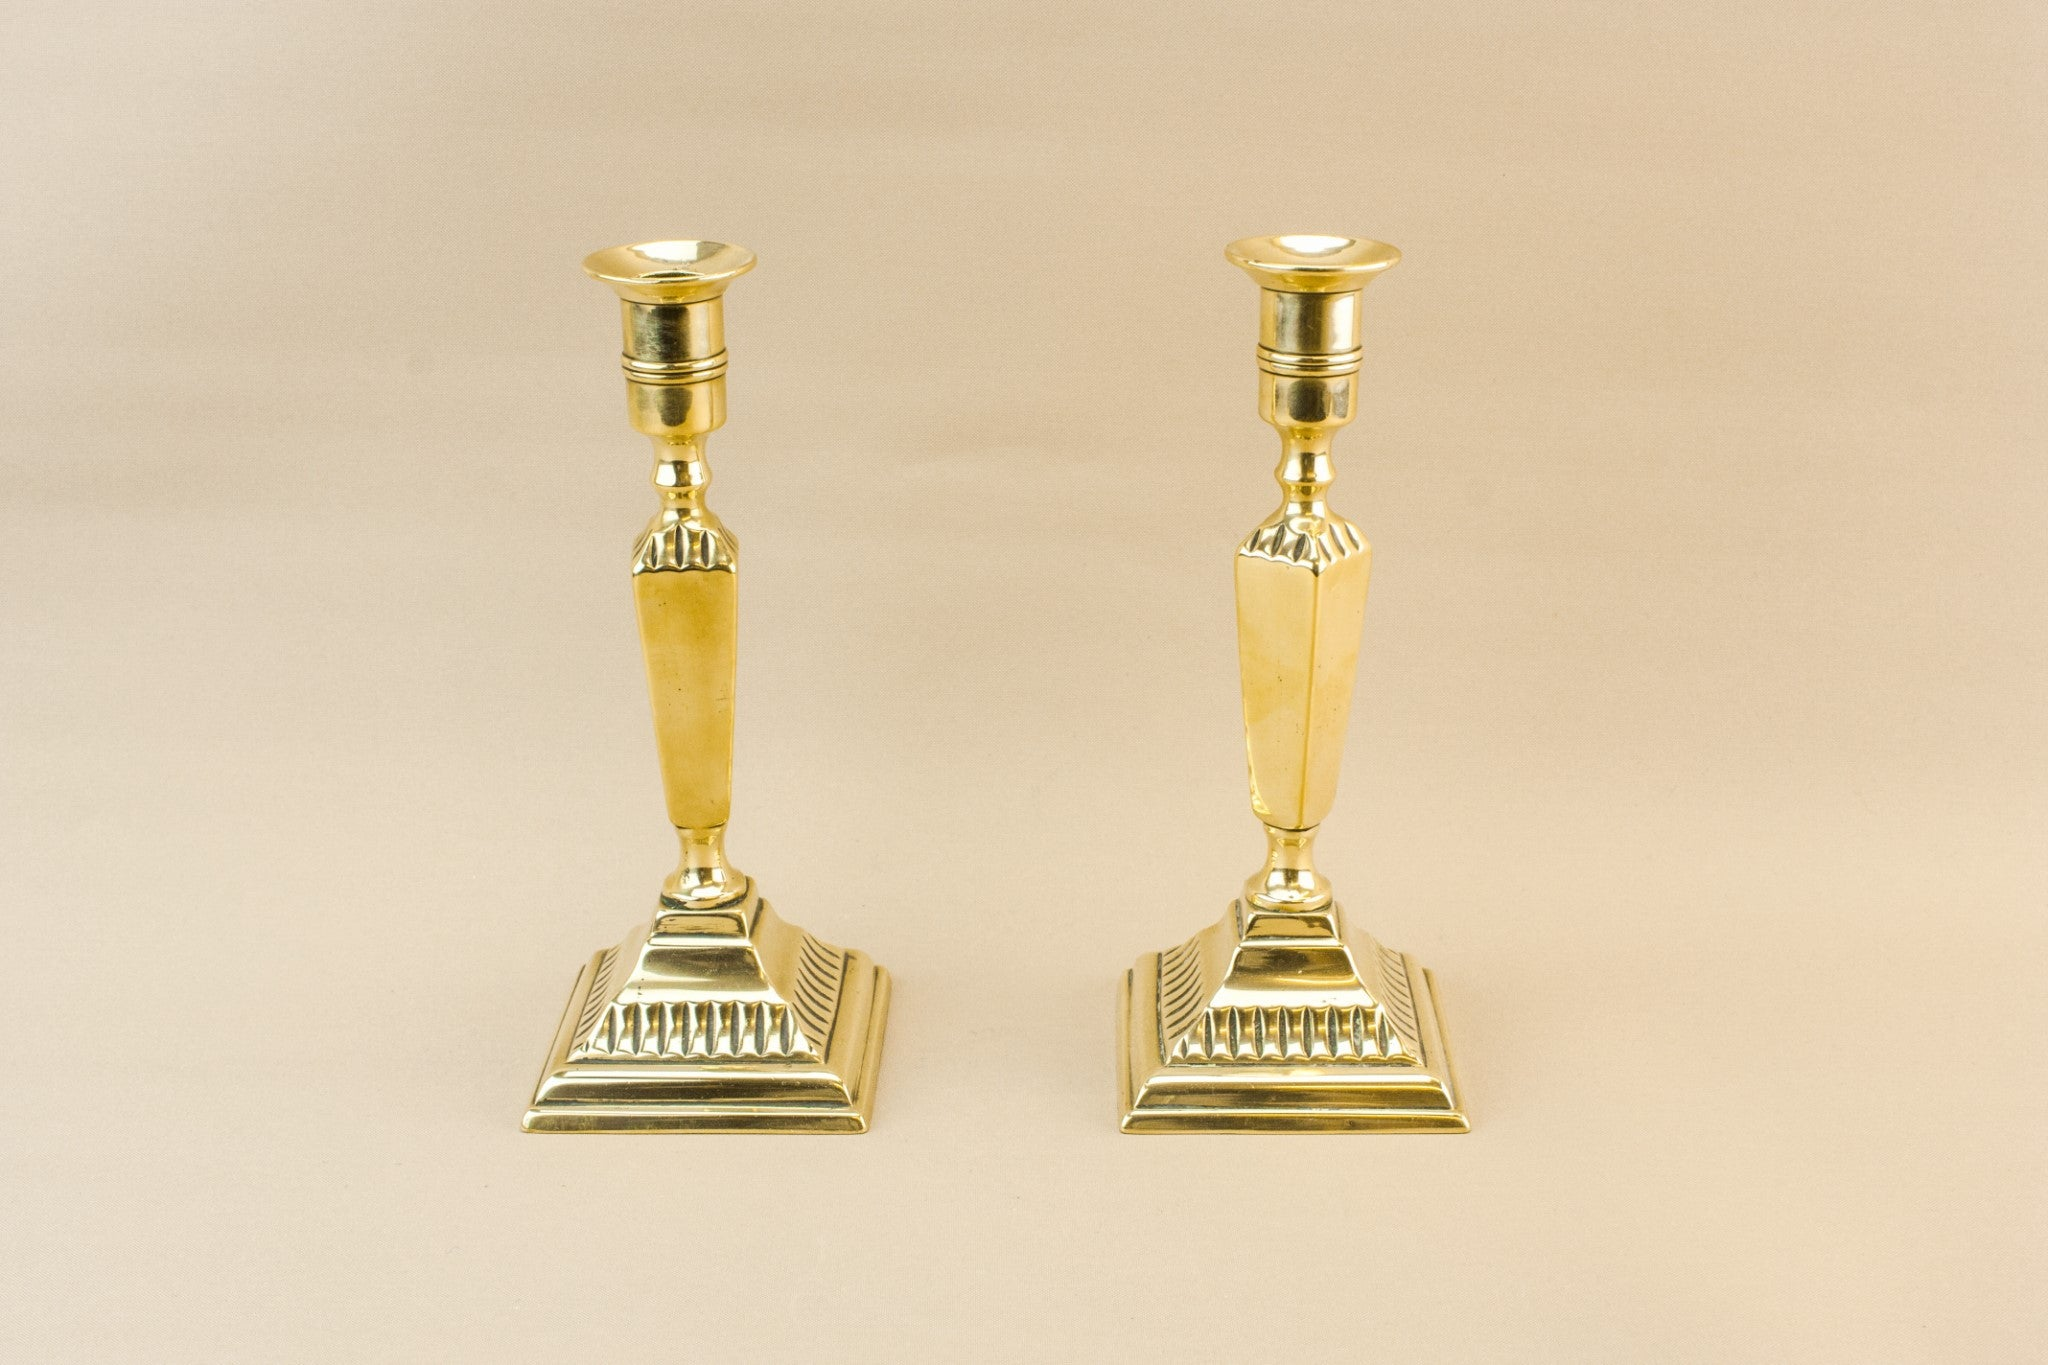 2 brass candlesticks